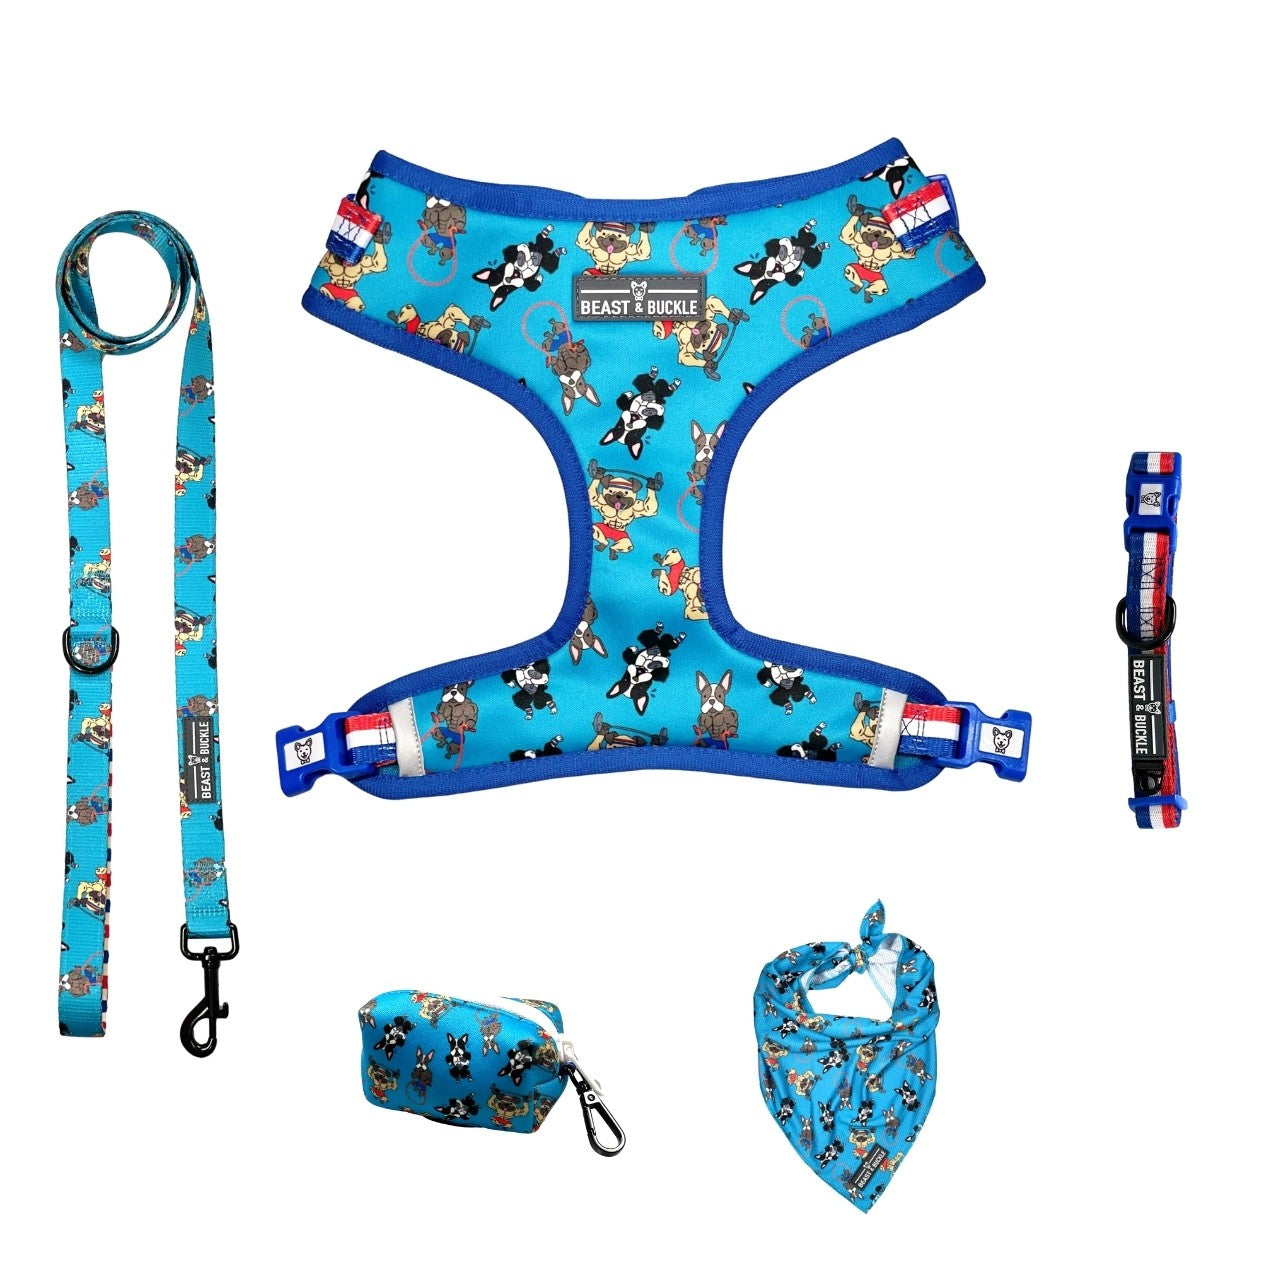 Workout Adjustable Harness Collection Bundle